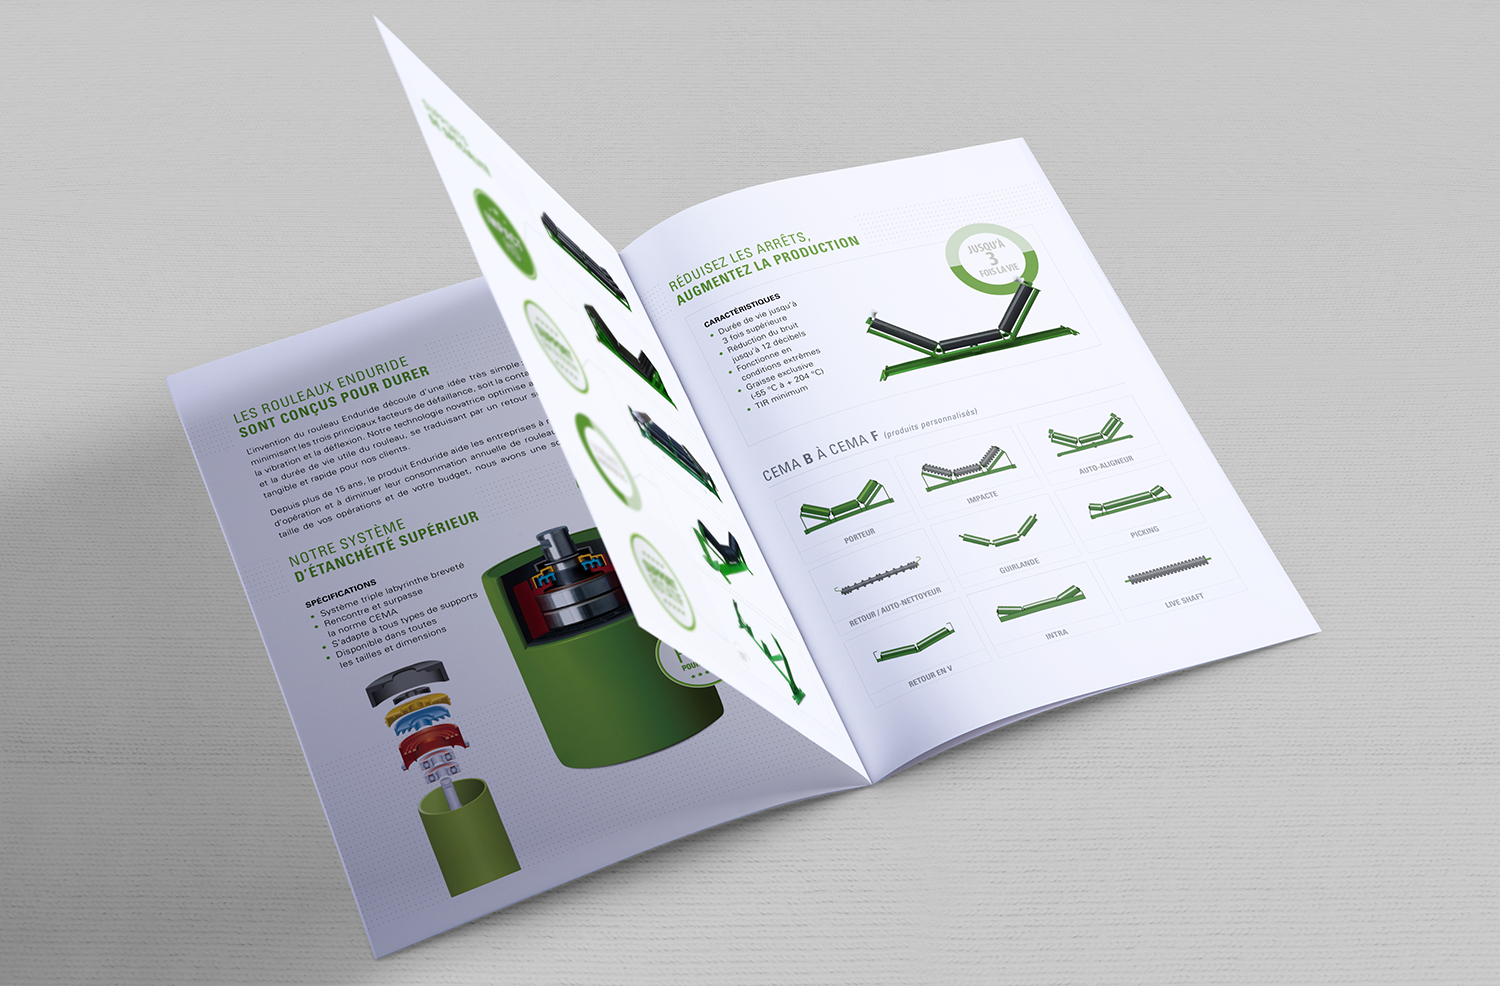 enduride-brochure